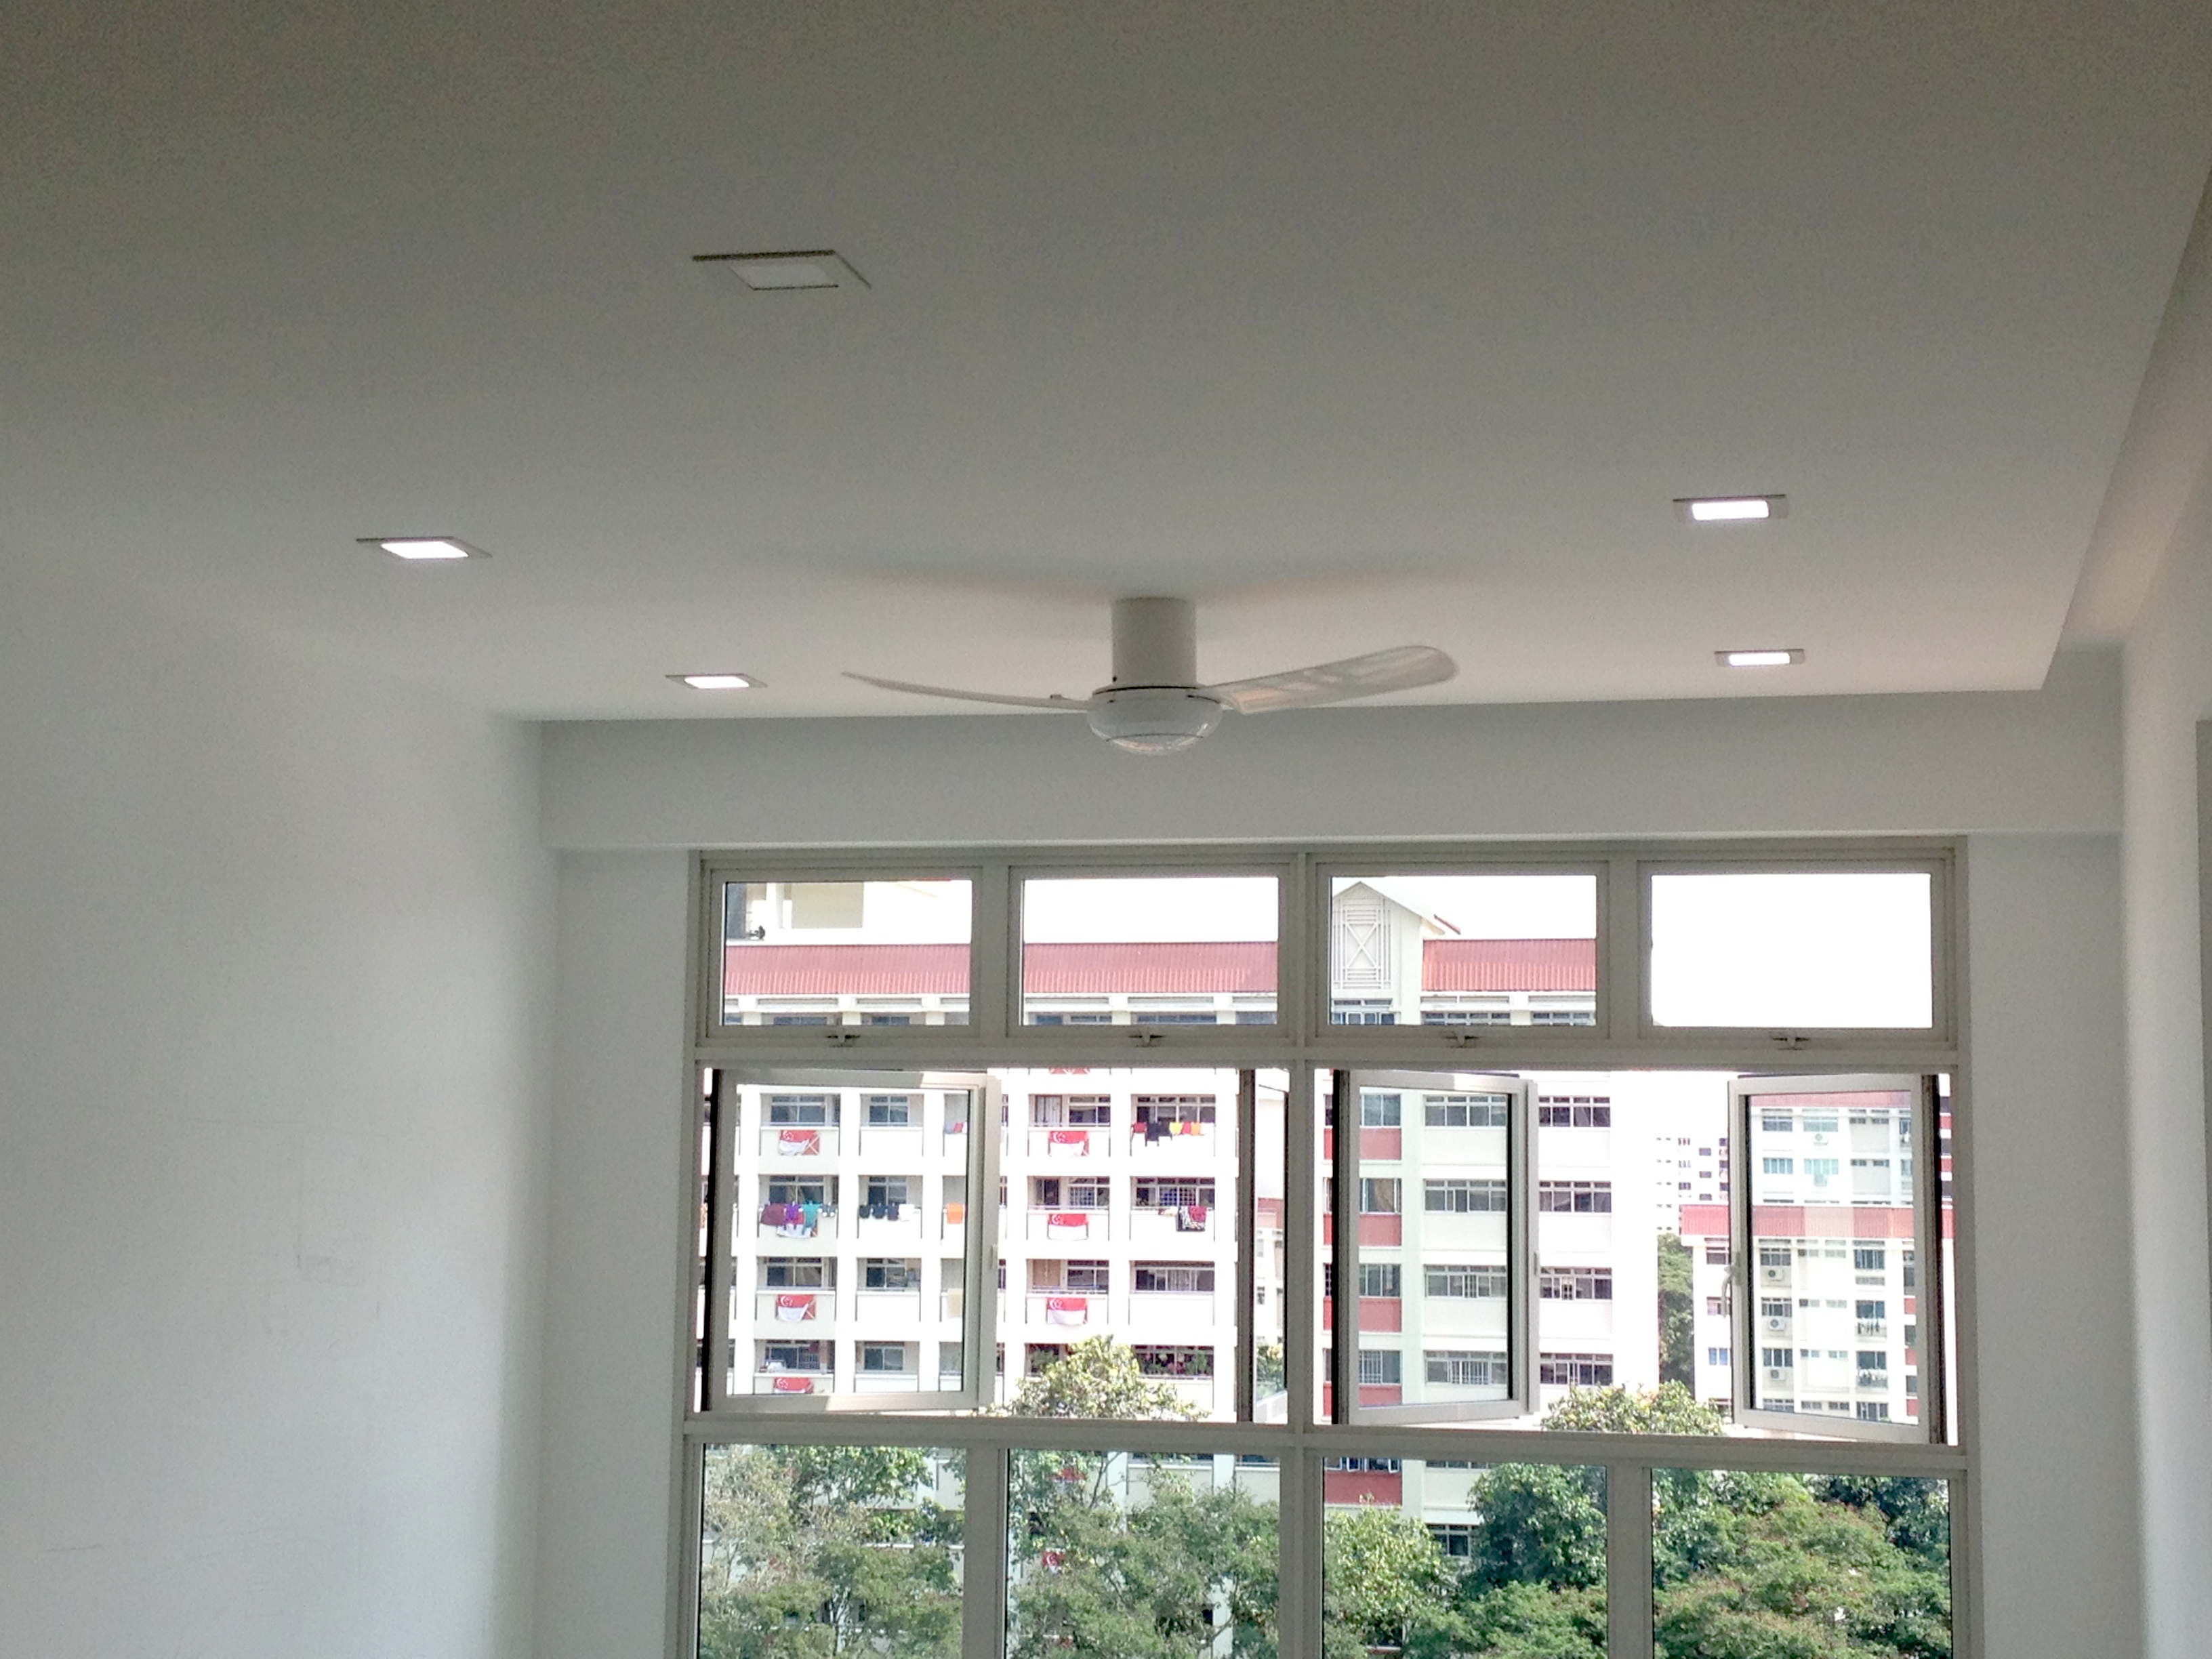 kdk-m11su-sample-sembawang-lighting-house-1.jpg